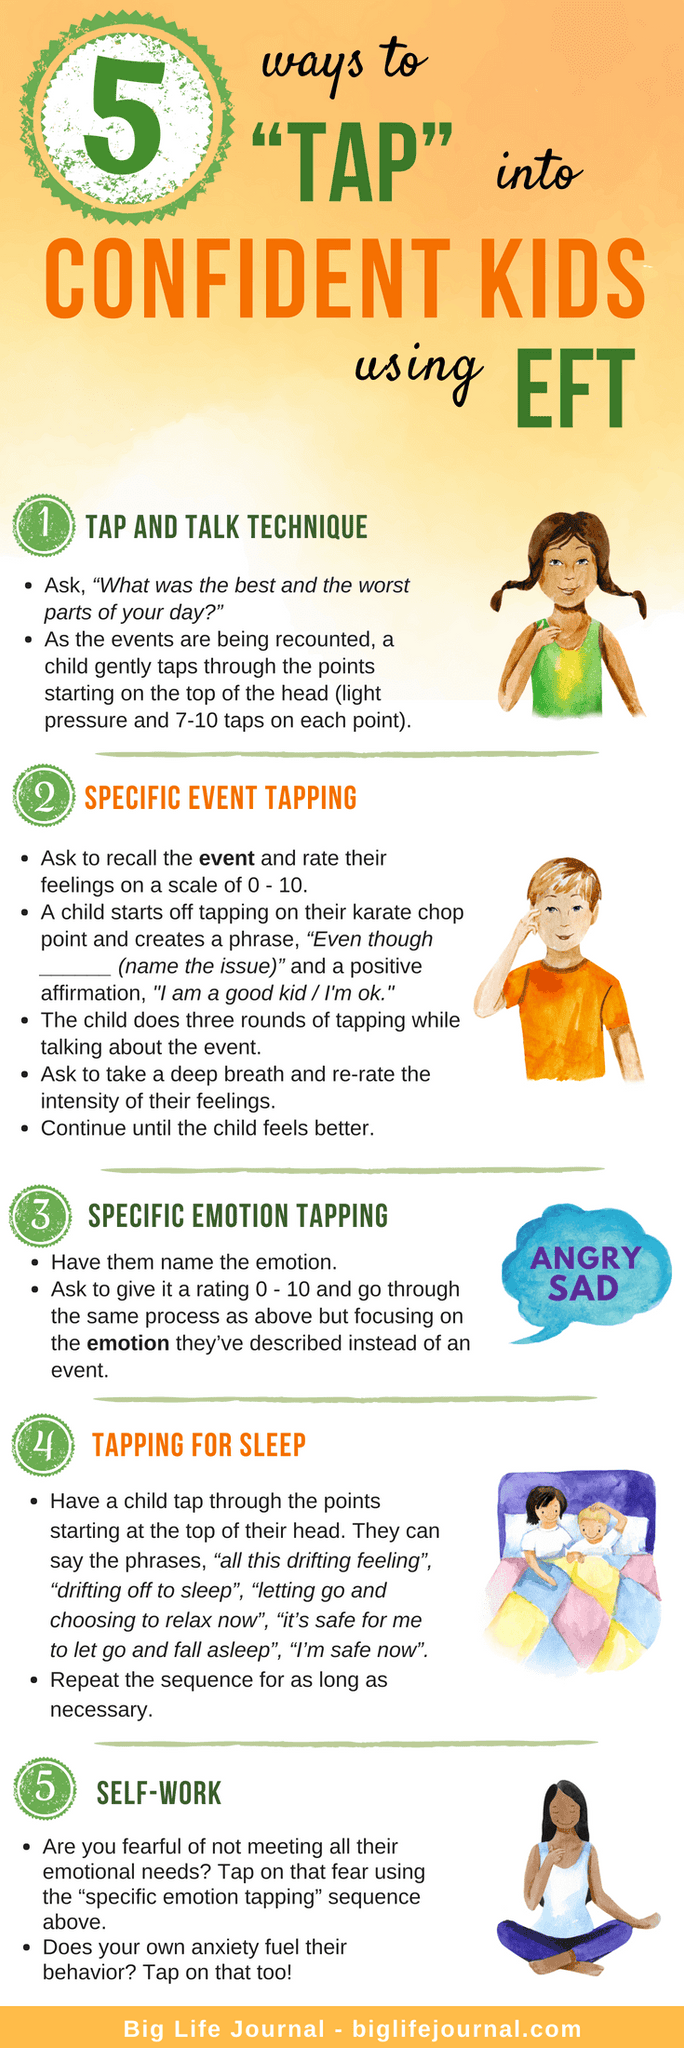 5 ways Tap Confident Kids EFT - big life journal